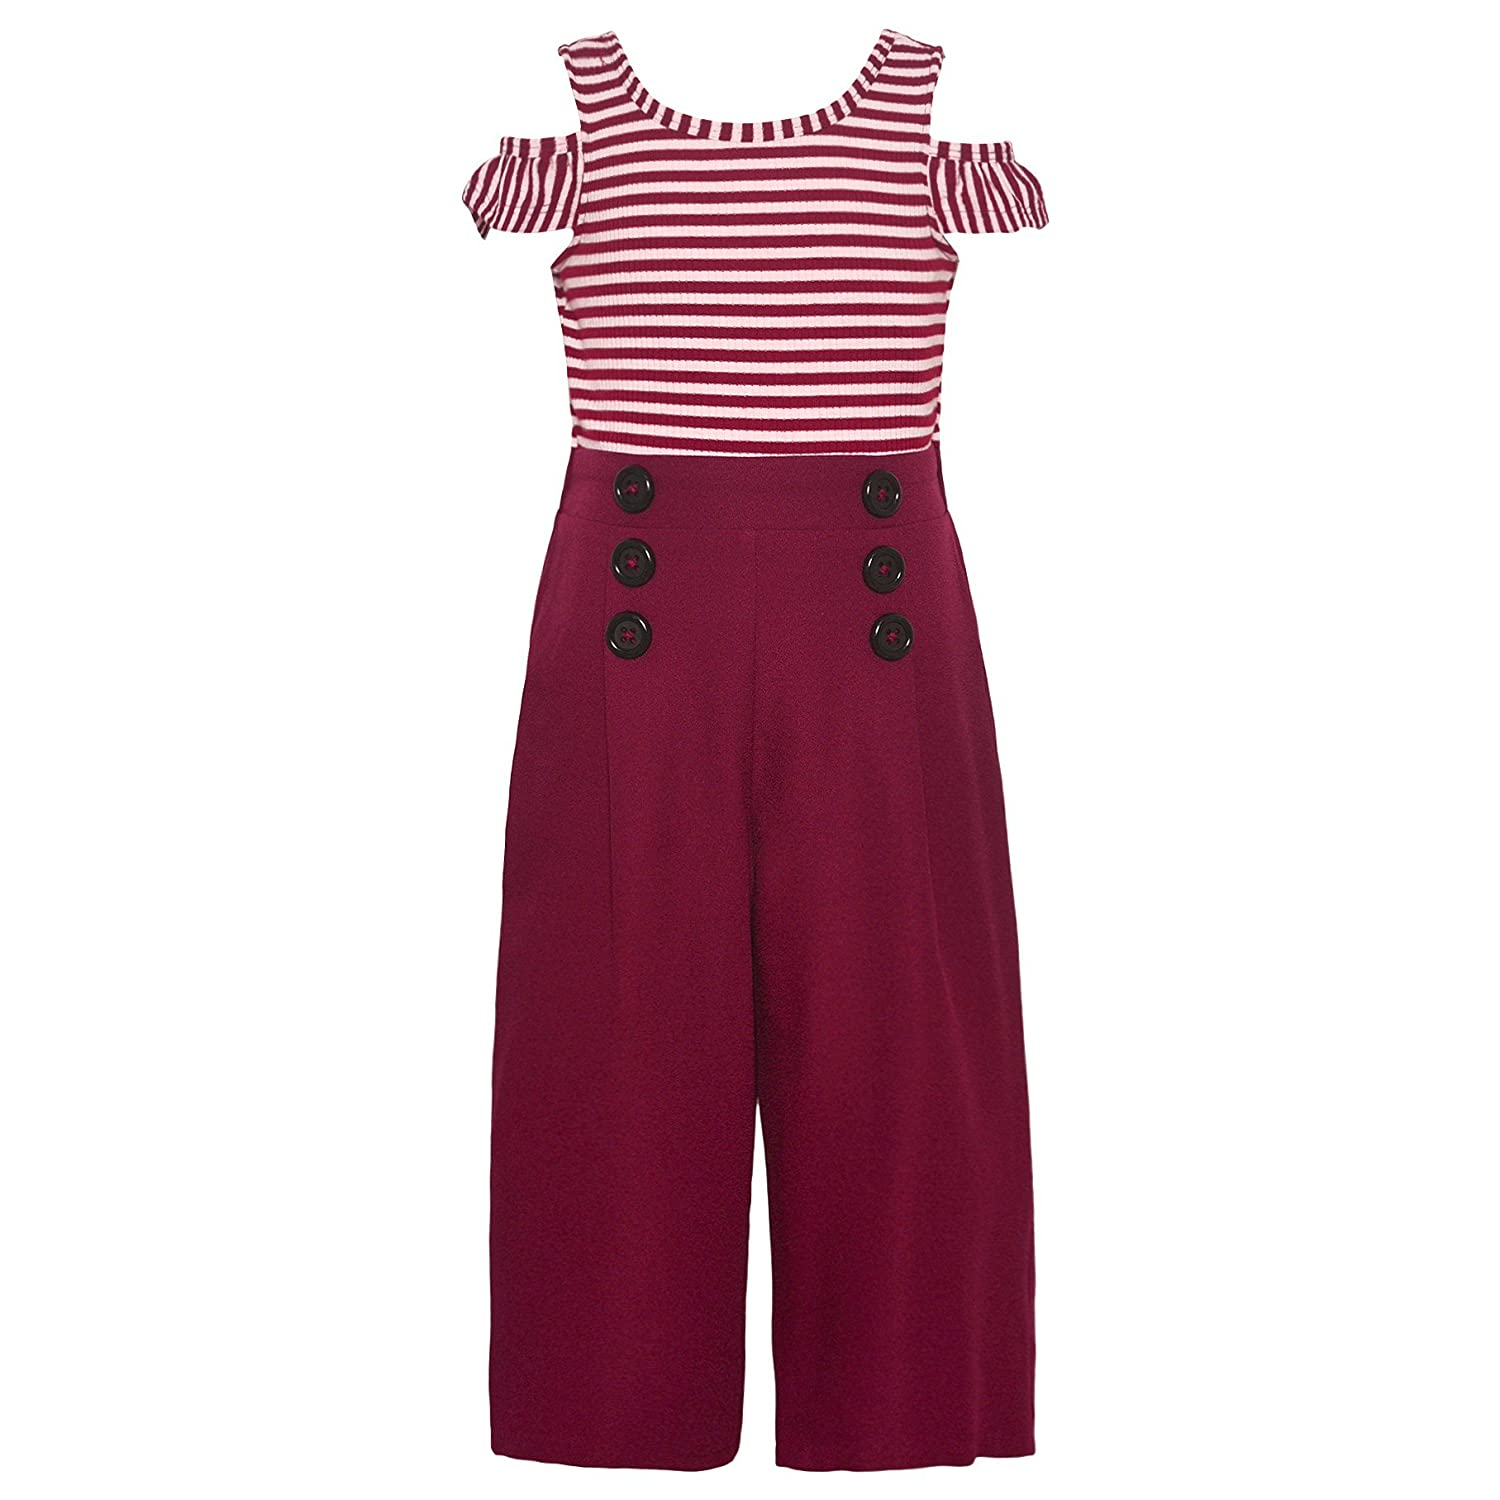 1940s Children's Clothing: Girls, Boys, Baby, Toddler Bonnie Jean Little Girls Burgundy Stripe Cold Shoulder Button Romper 4-6X $25.99 AT vintagedancer.com